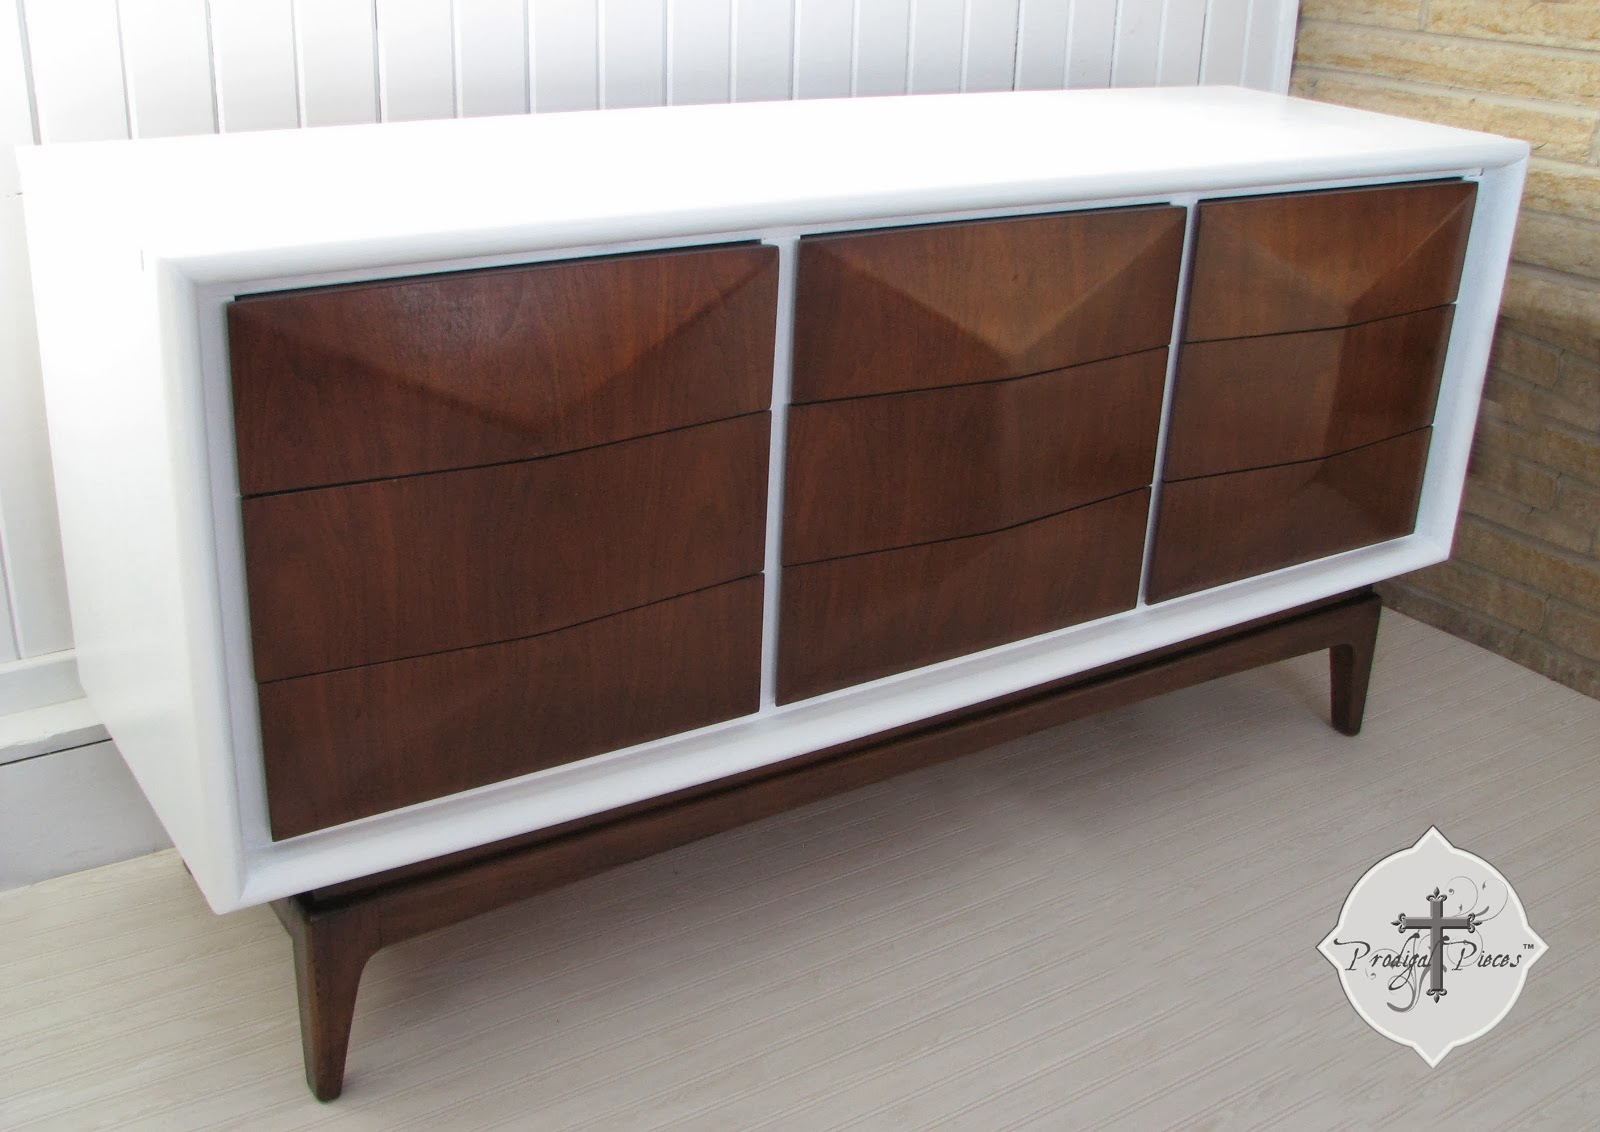 Vintage Mid Century Modern Console Dresser By Prodigal Pieces